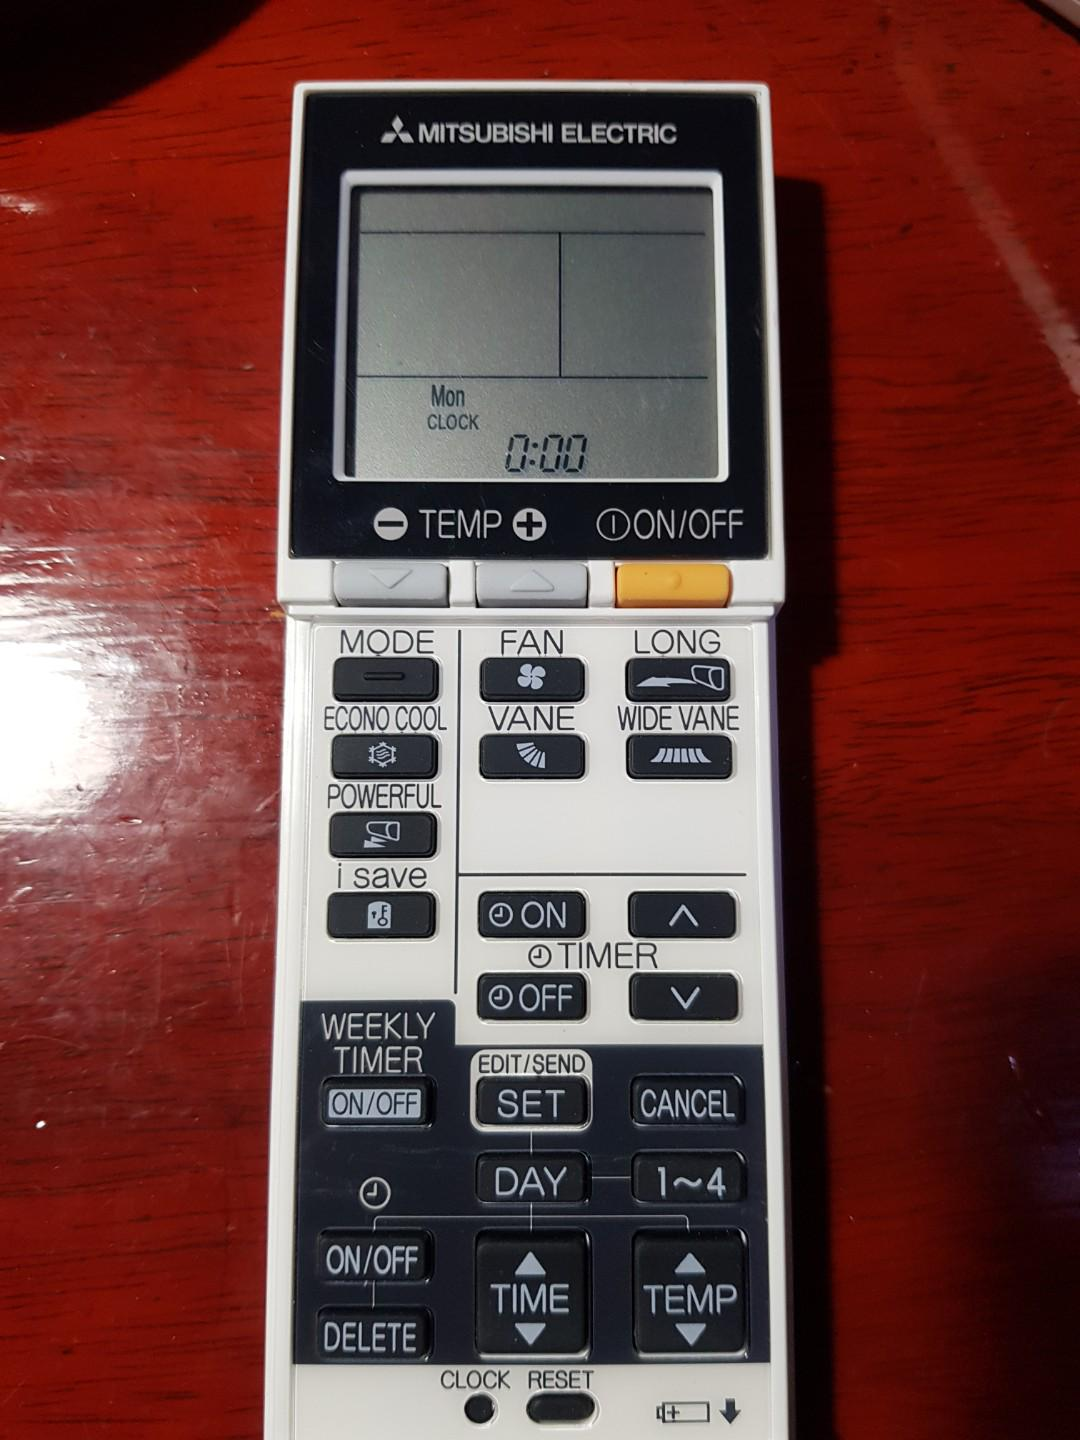 Mitsubishi AC Remote Control, Home Appliances, Cooling & Air